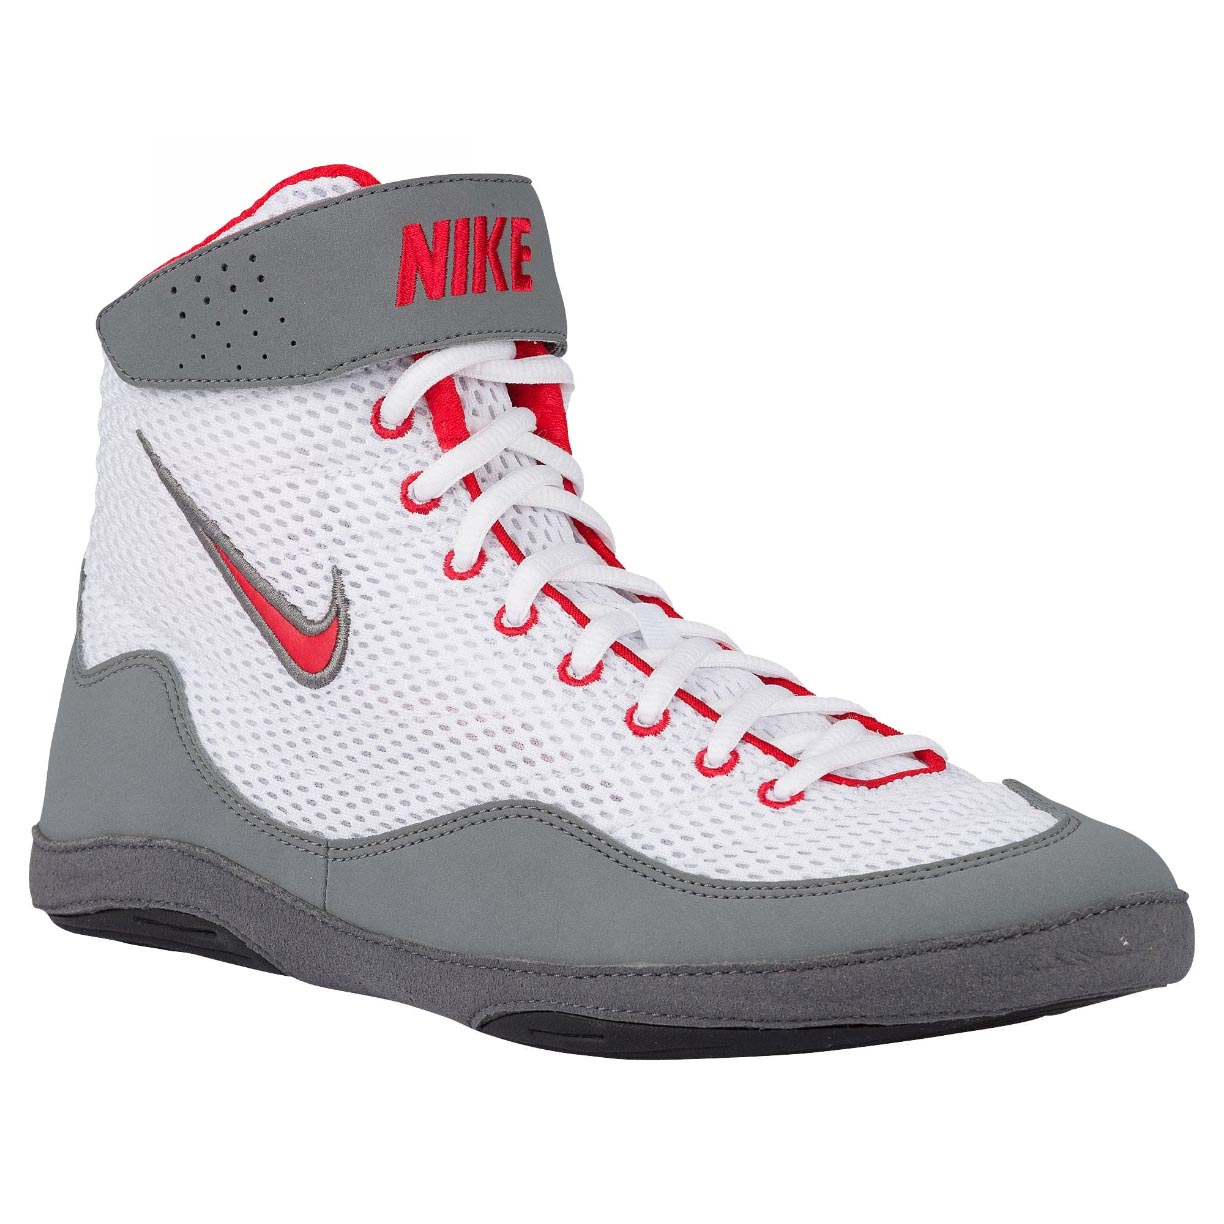 b3cf47fc08dc6b ... Nike Inflict 3 Boxing Boots White Red Grey ...